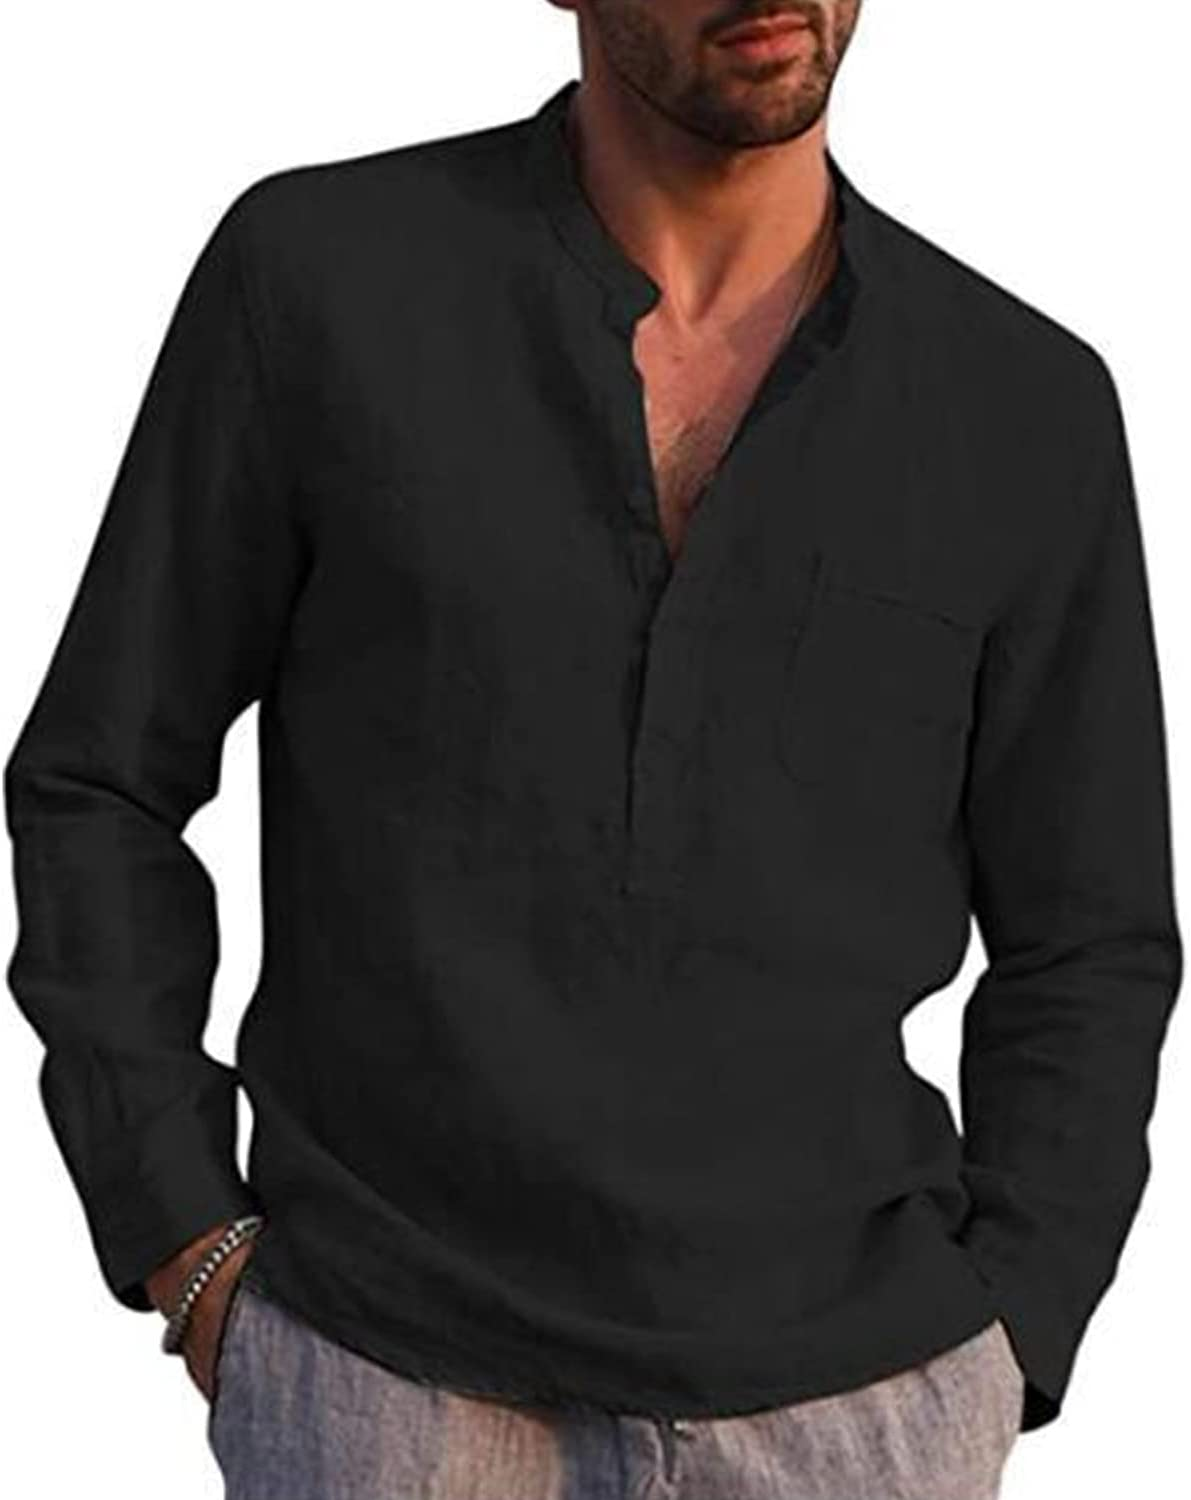 Men's V-Neck Loose Special price for a limited time Fit Linen Cotton Sleeve Long Shirt Roll-up Ba Branded goods